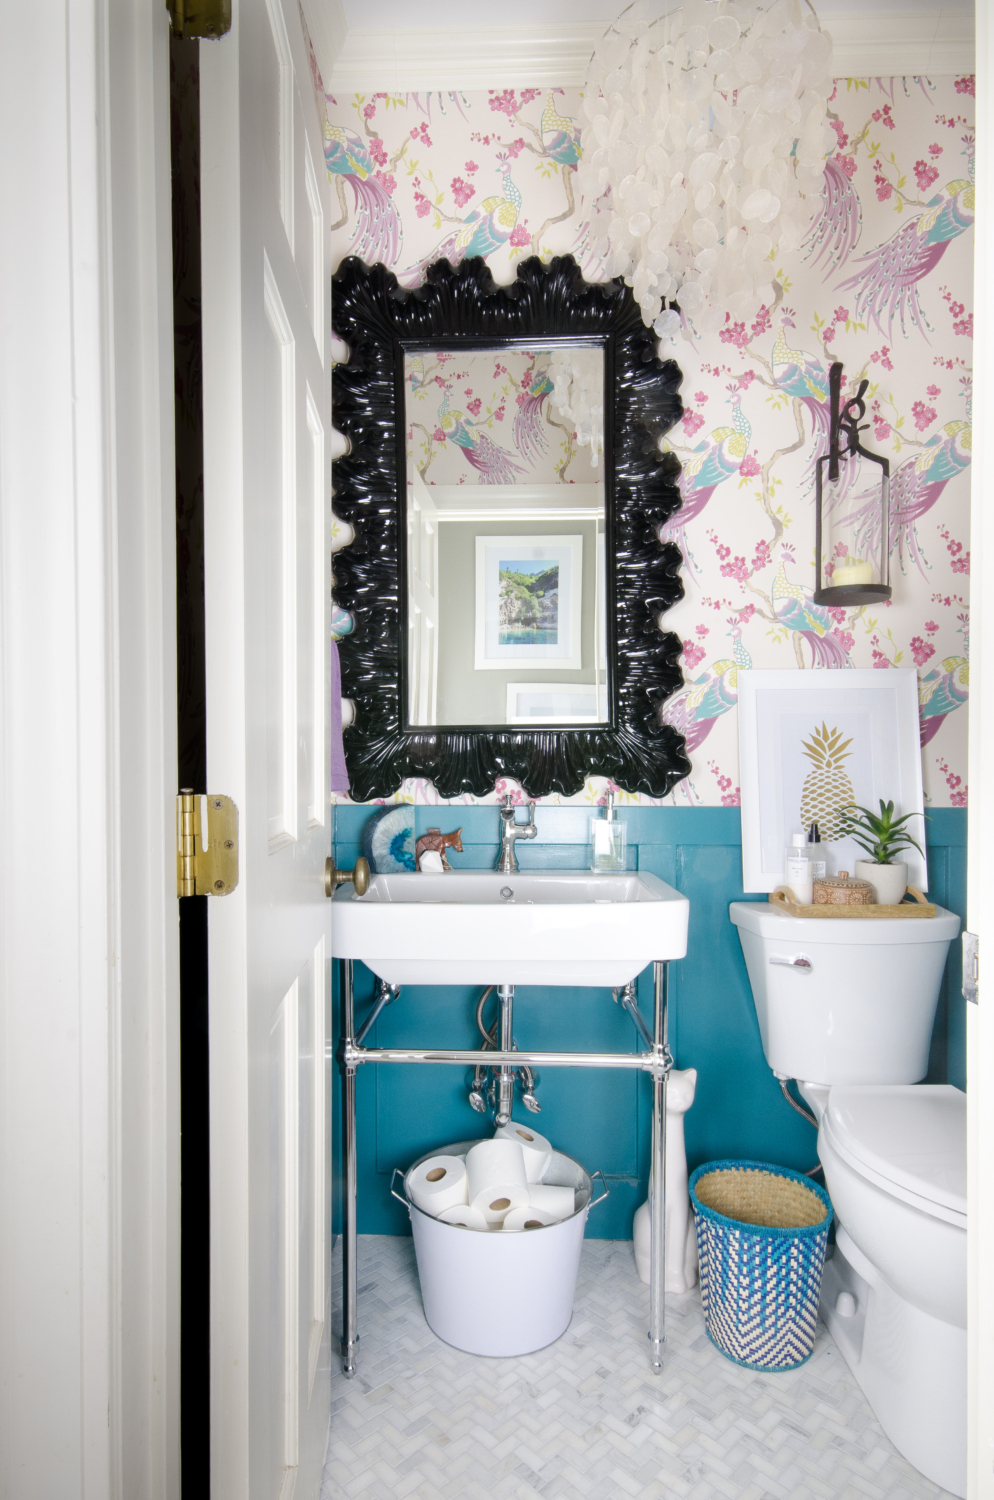 A small powder room gets a majorly gorgeous makeover, including marble tile, console sink, bird wallpaper, and capiz shell pendant. You won't believe this before and after!